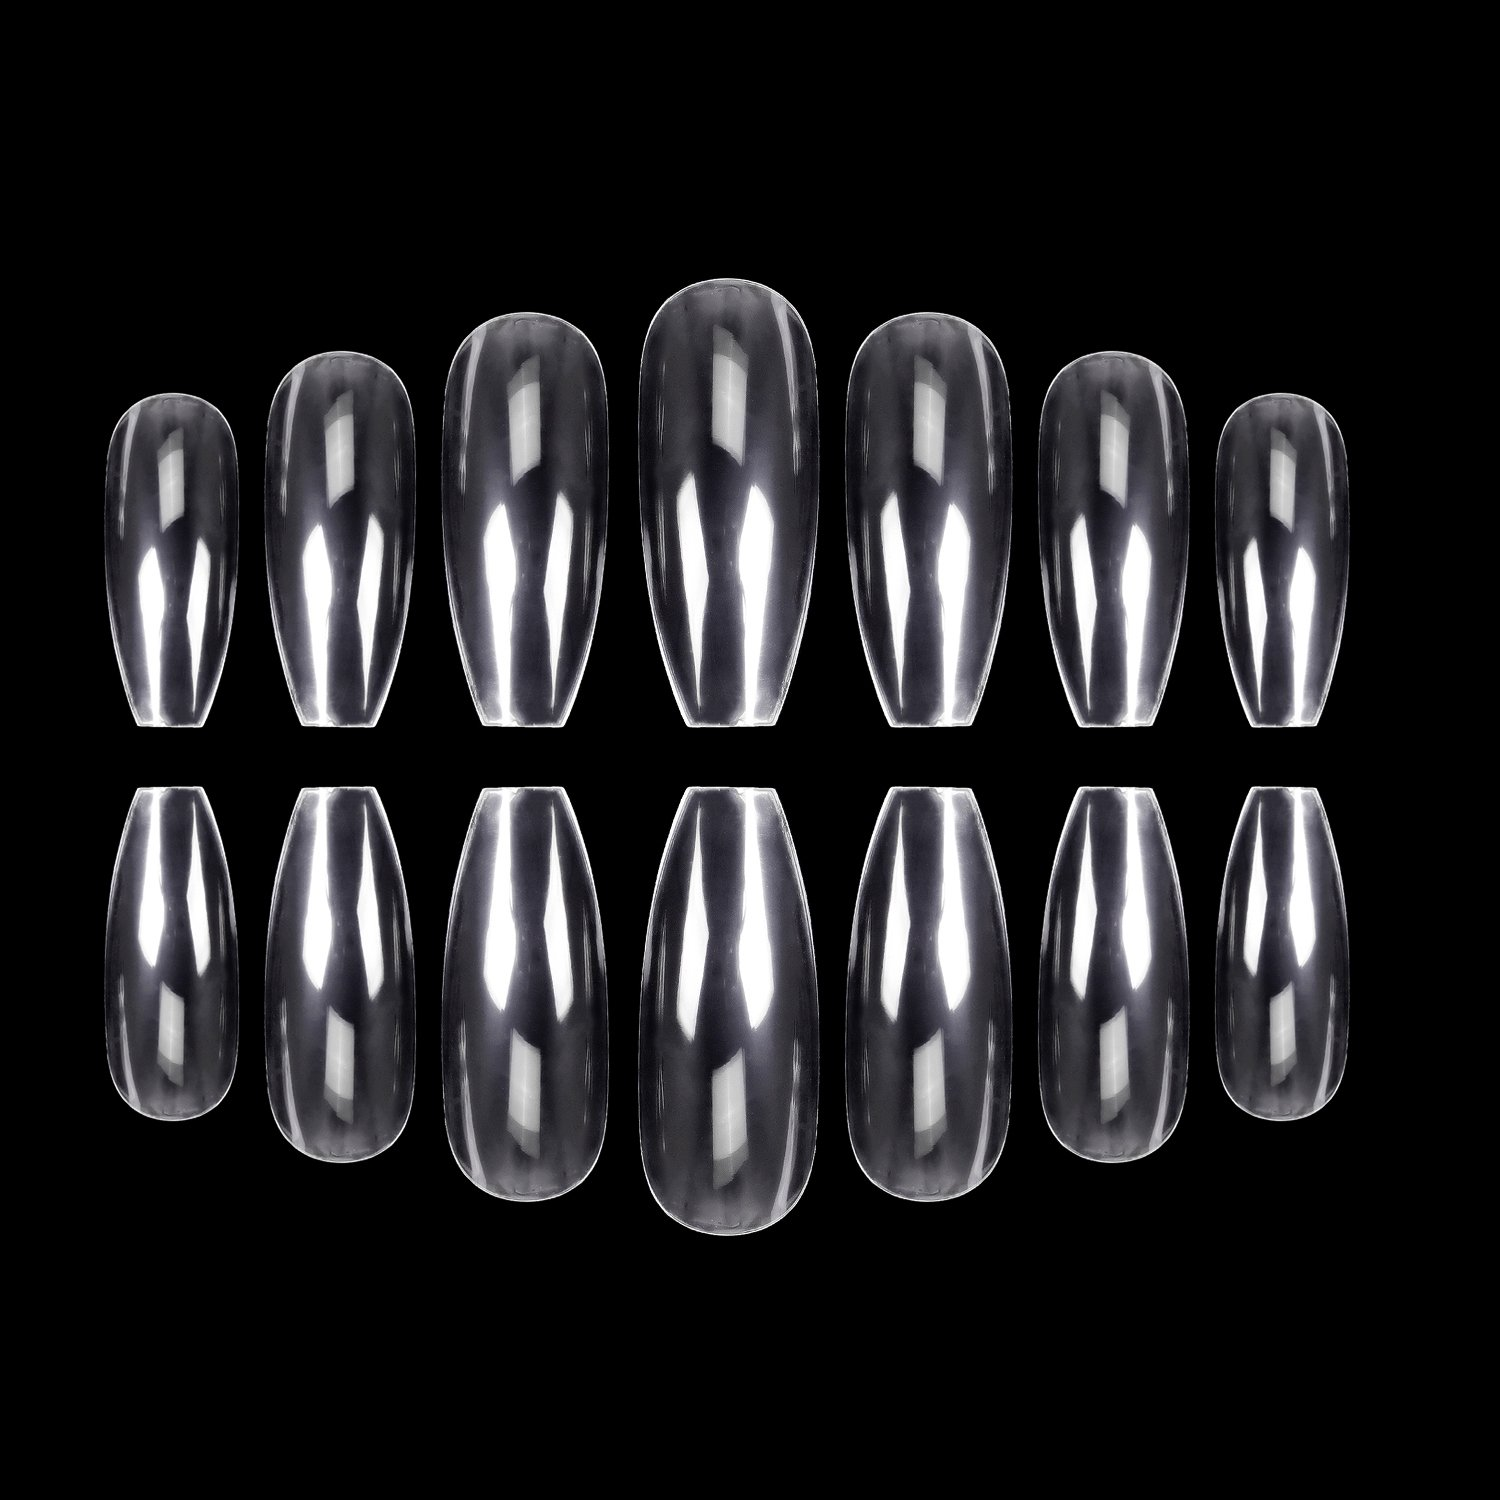 Amazon.com : ECBASKET Clear Nail Tips Stiletto Nails Full Cover Fake ...